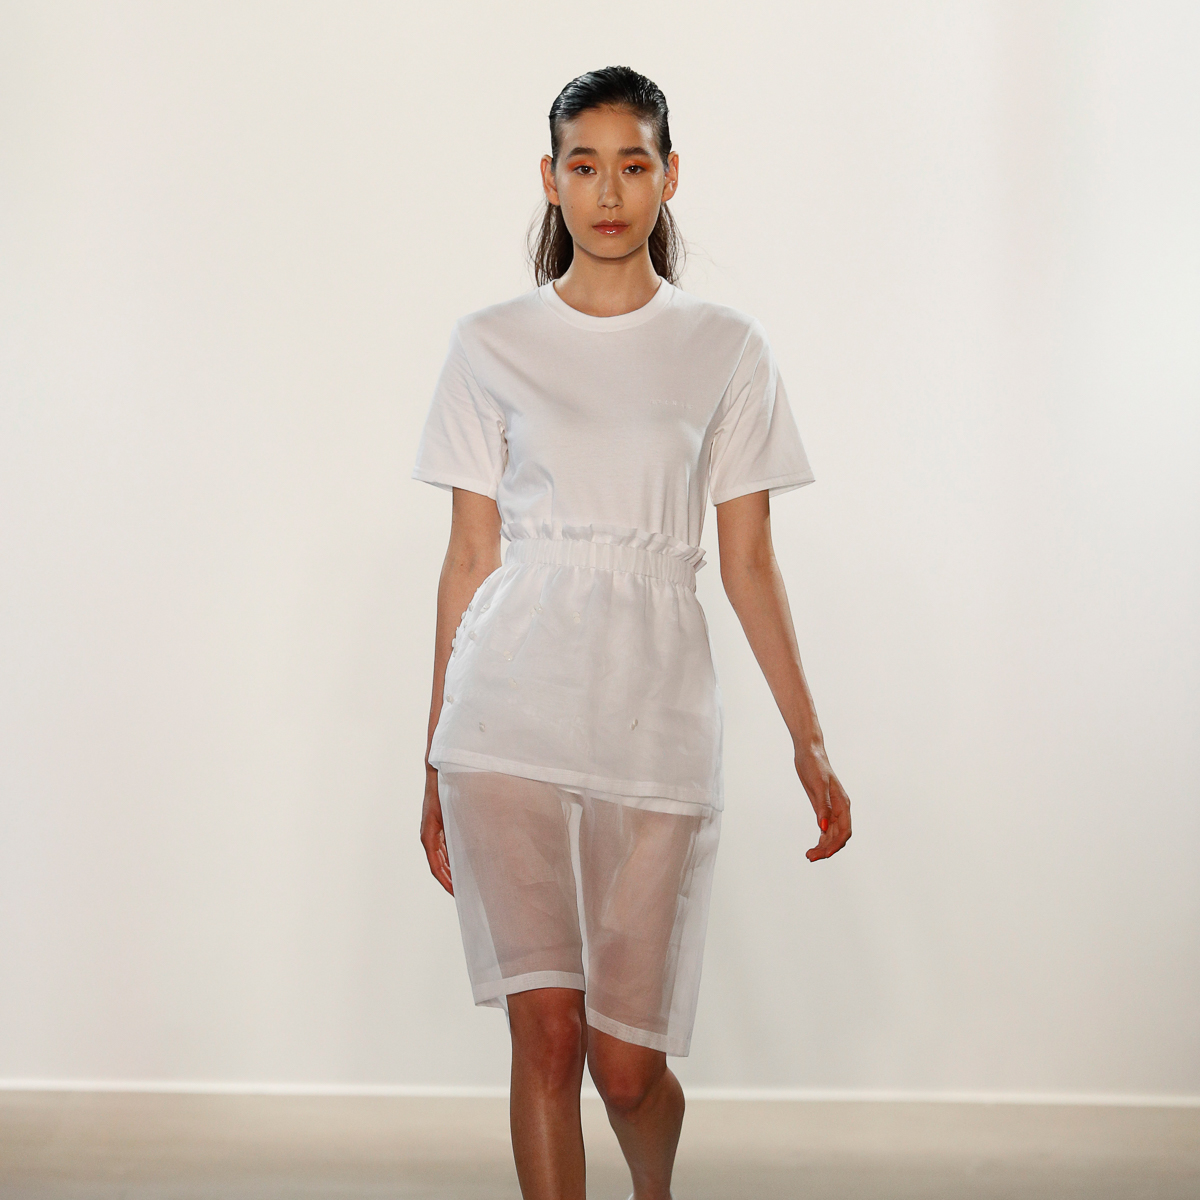 Hien Le Runway Show Fashion Week Berlin FS 2018-2